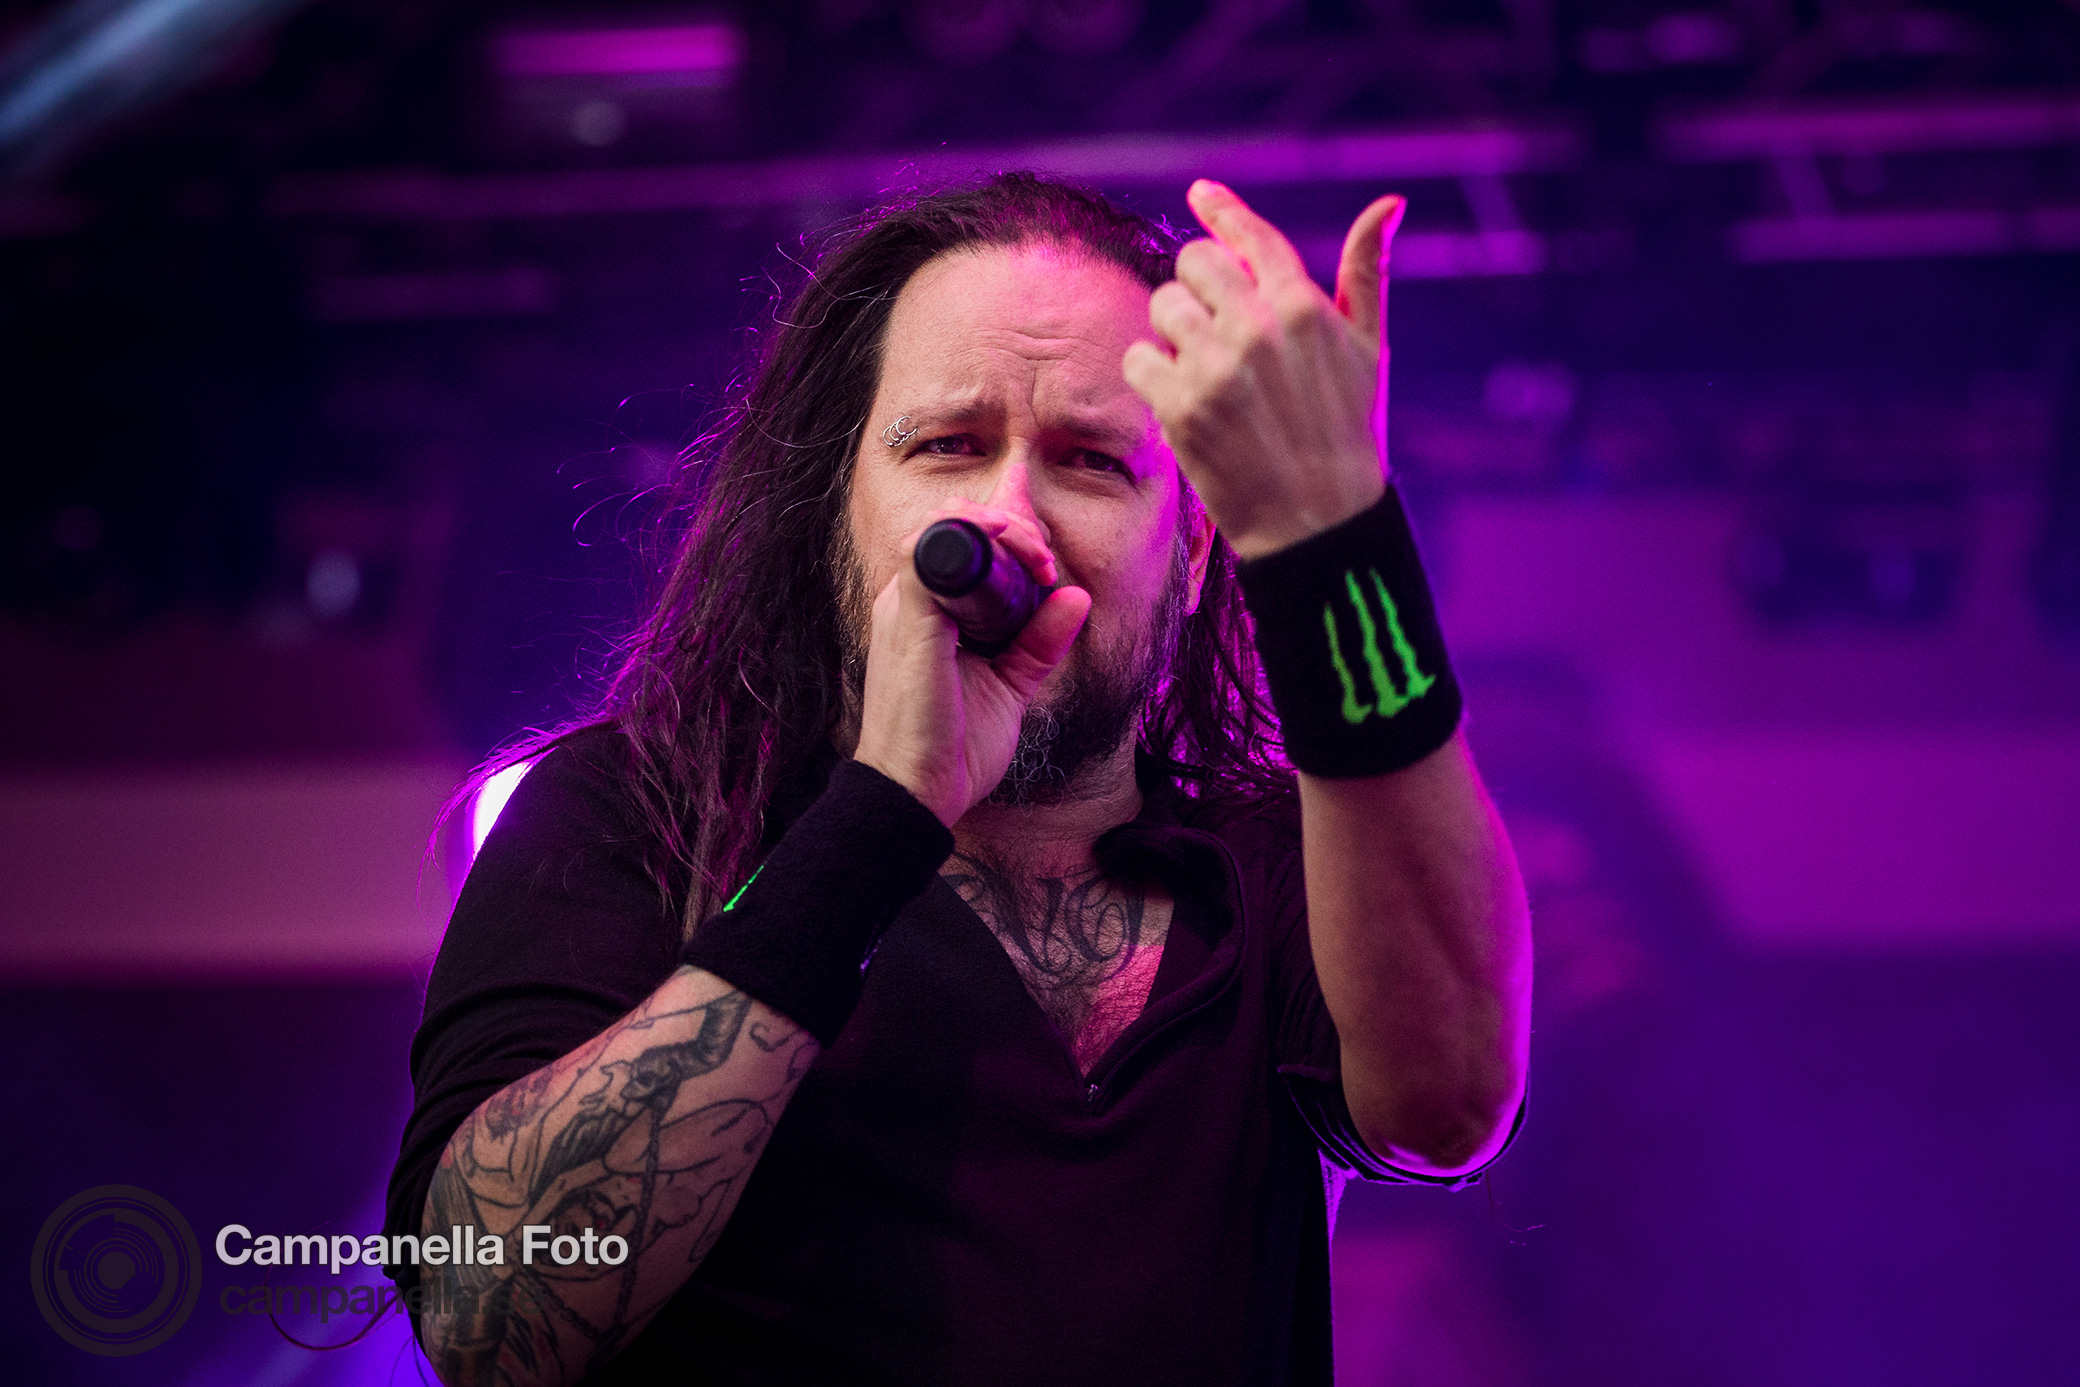 Korn performs in Stockholm - Michael Campanella Photography